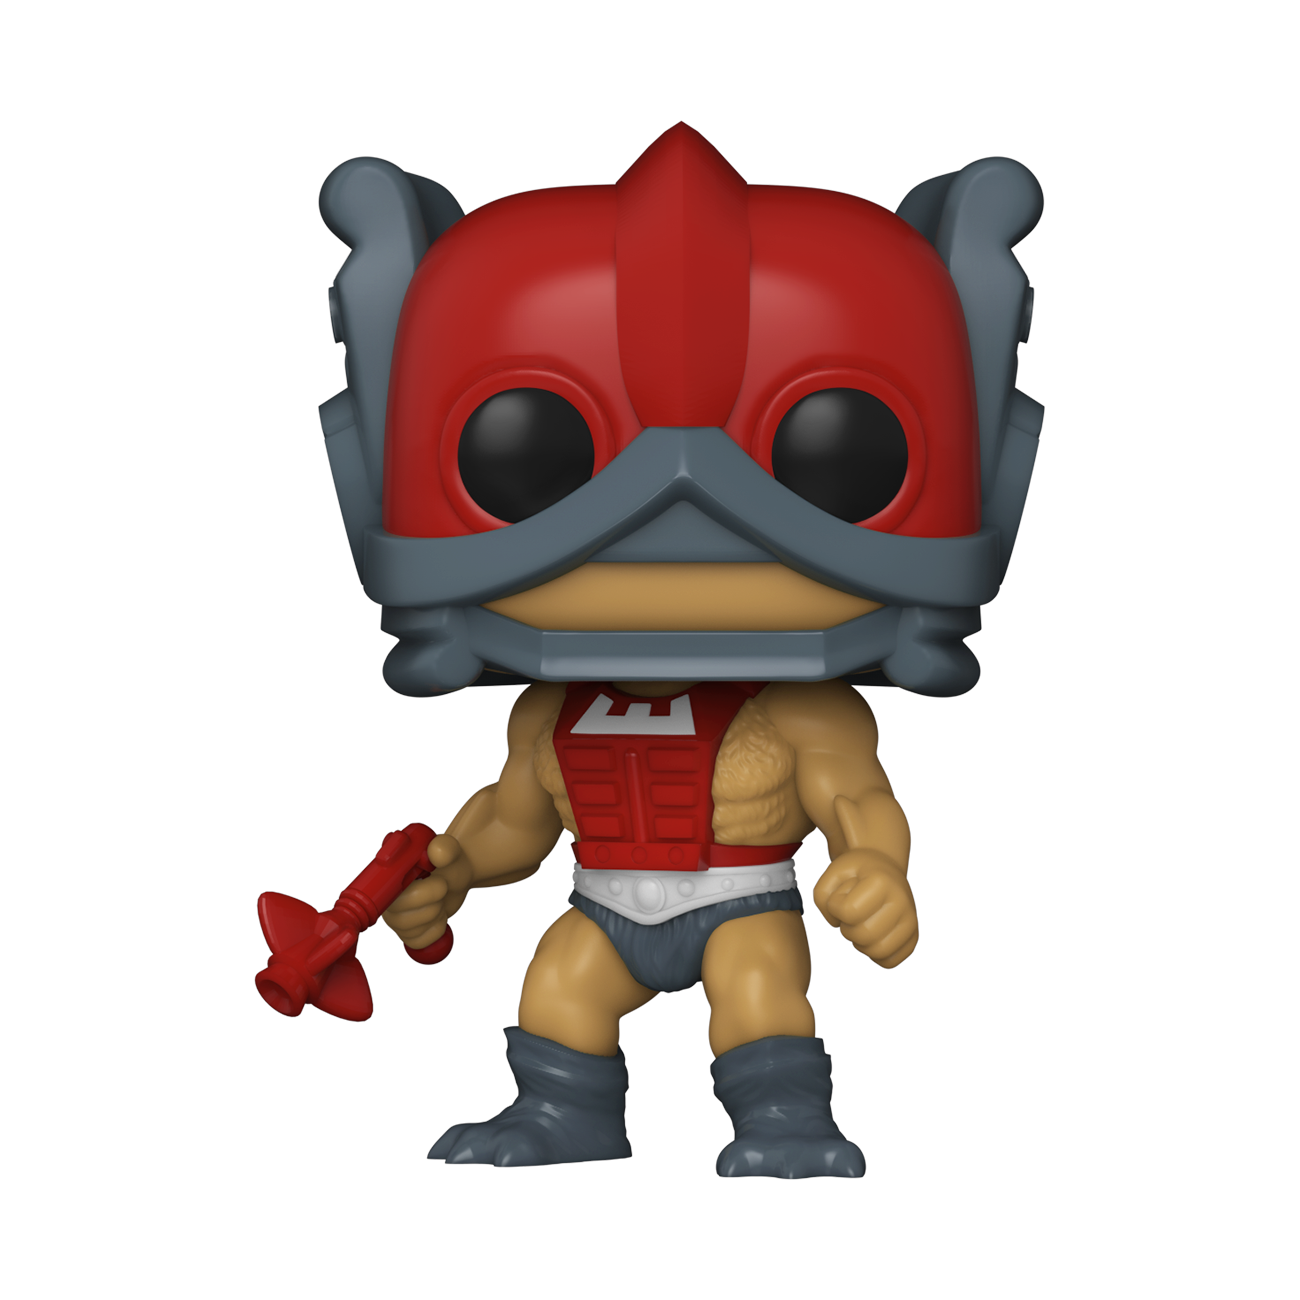 PRE-ORDER Funko Masters of the Universe - Zodac Fall Convention 2021 Exclusive Pop! Vinyl Figure